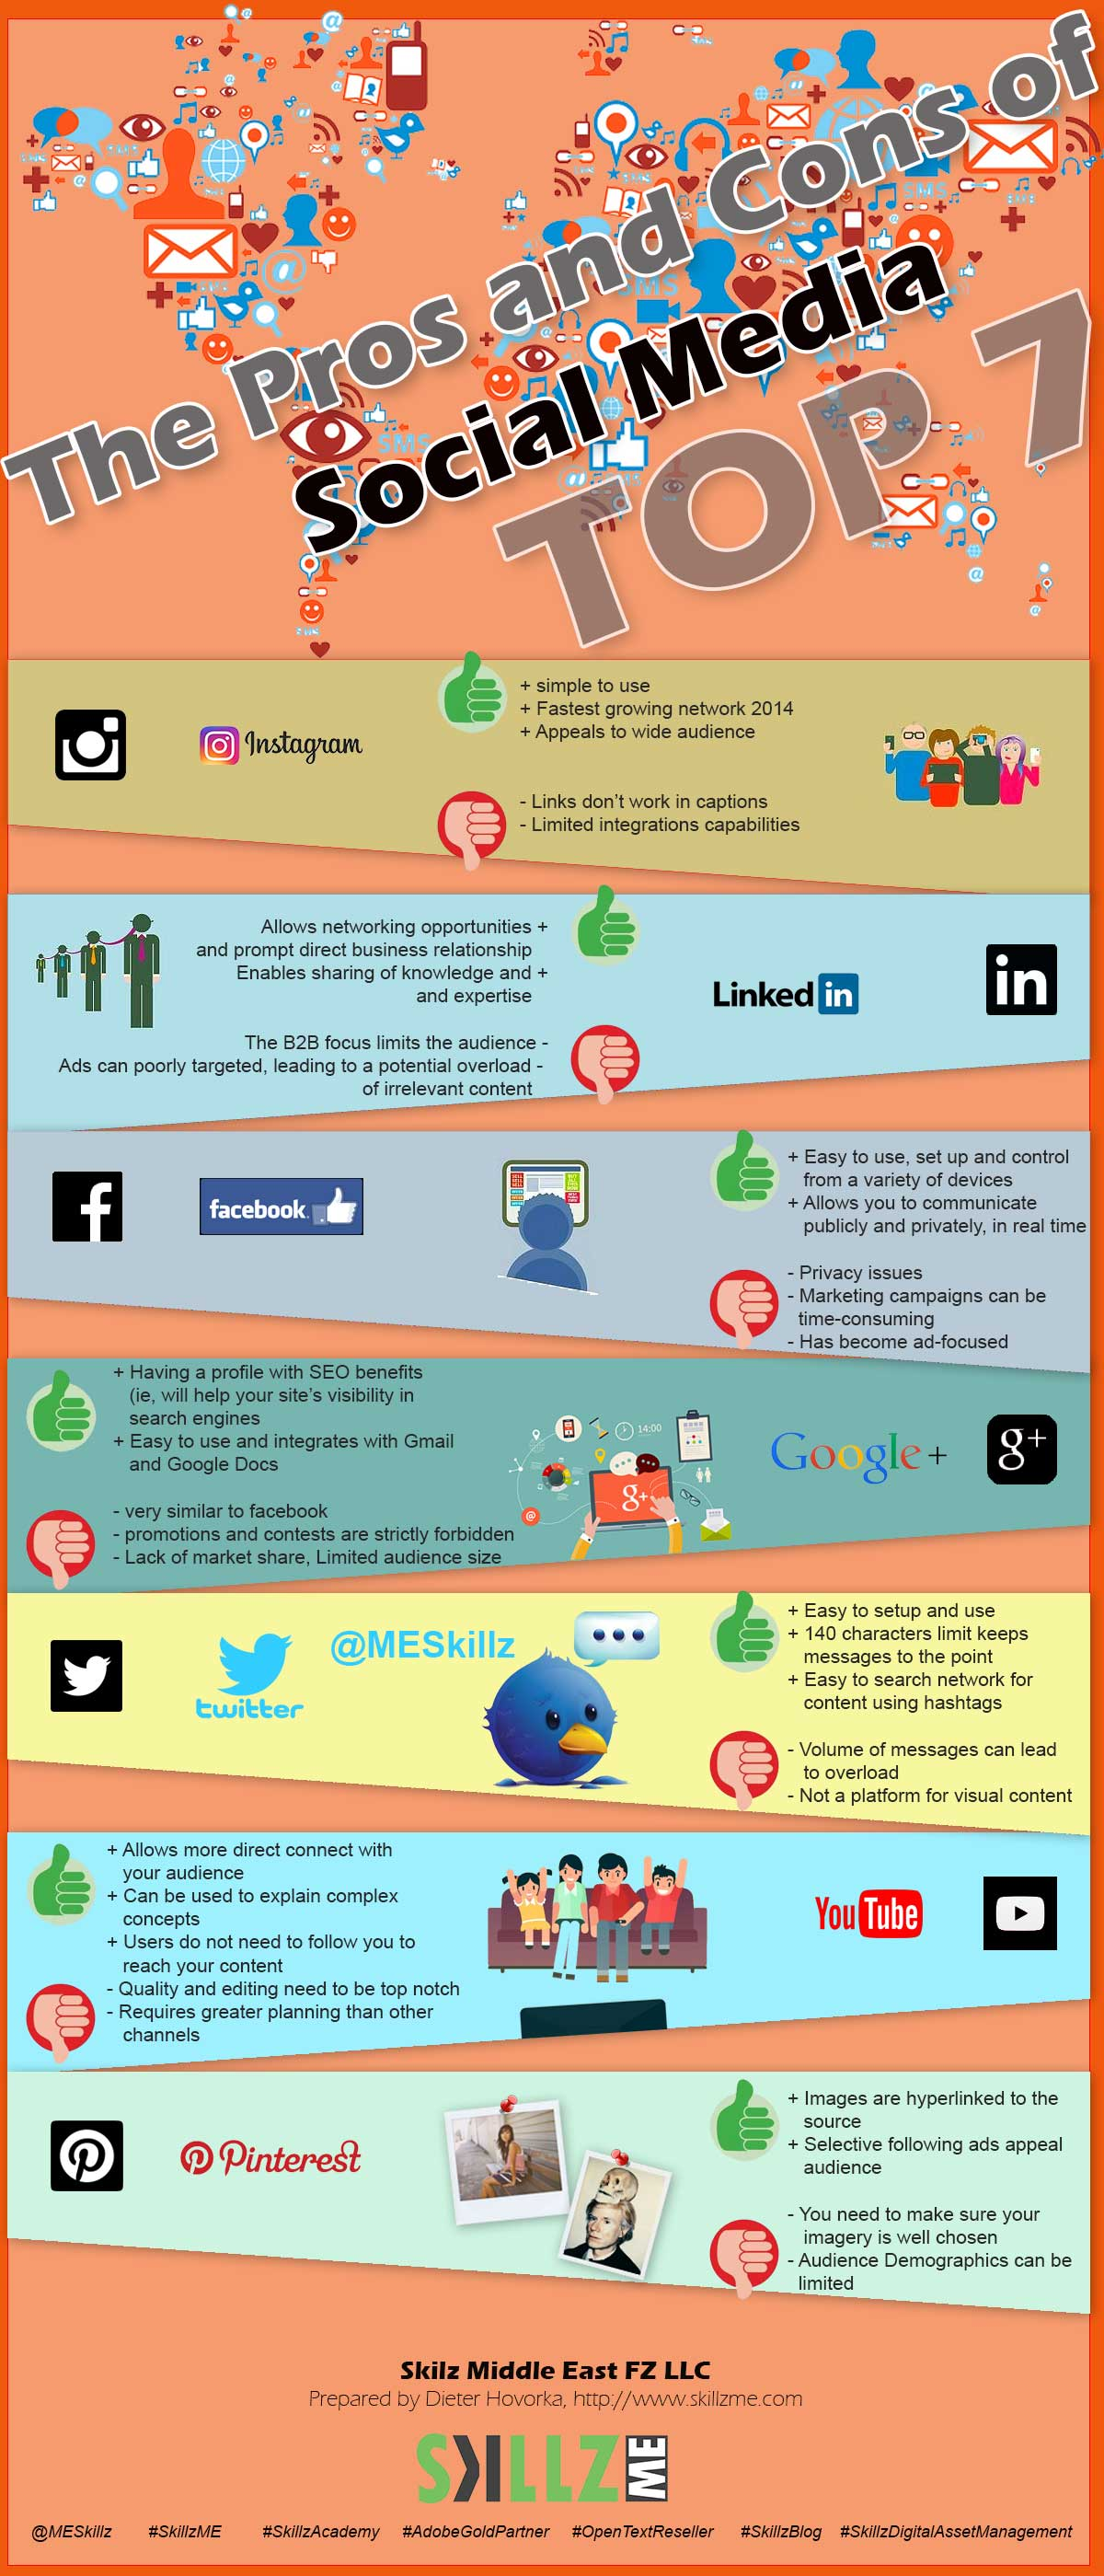 The Pros and Cons of Top 7 Social Media